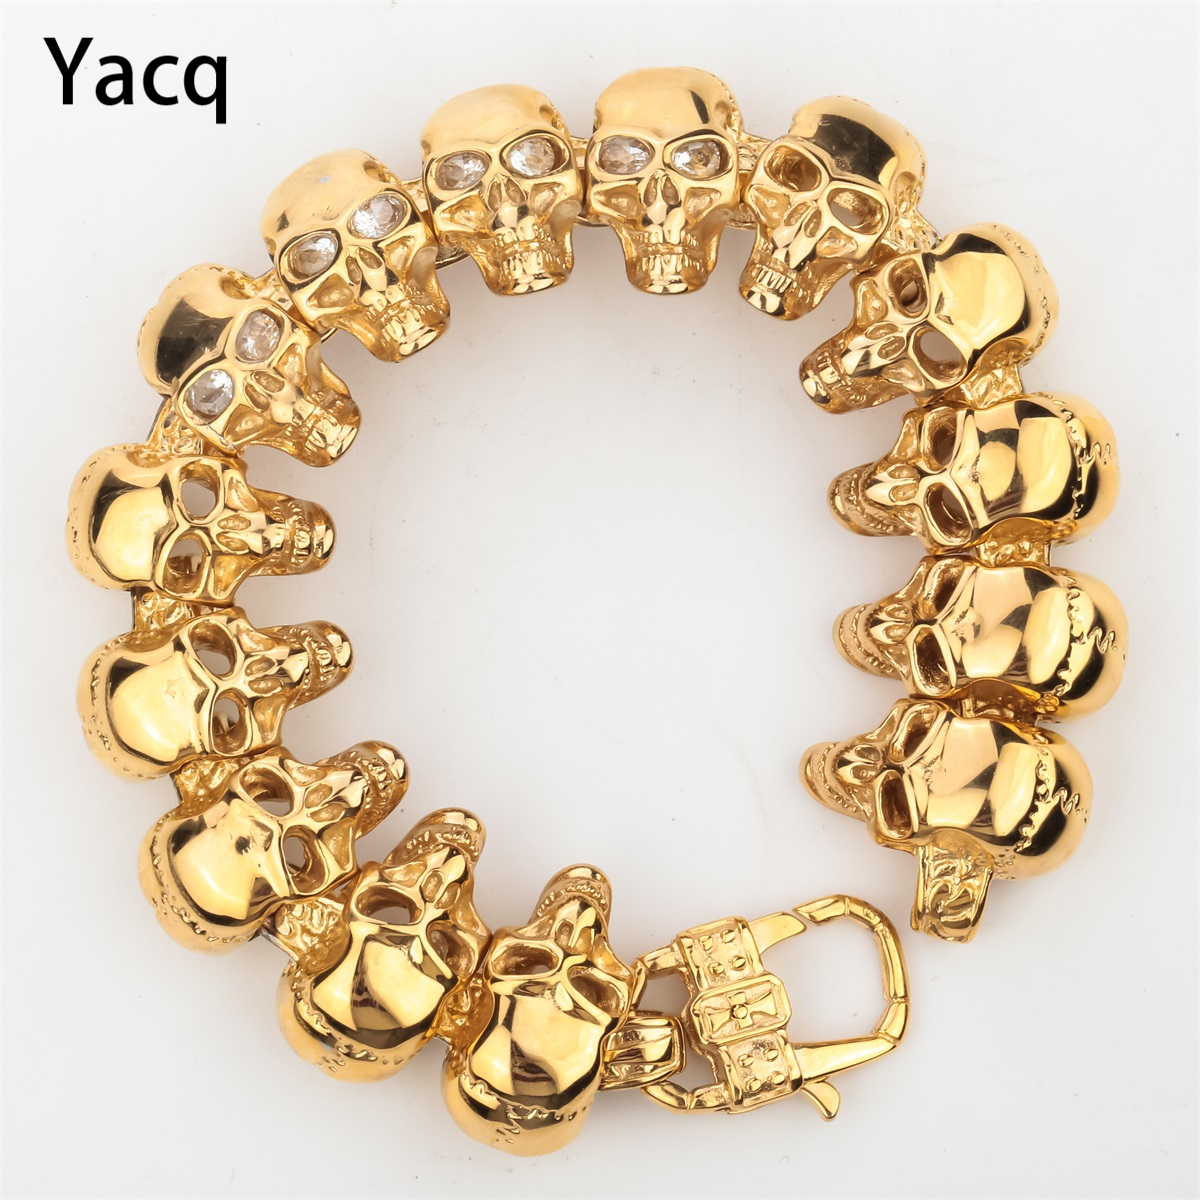 Skull Stainless Steel Bracelet Gold Color Mens Heavy Jewelry Fathers Day Gifts for Dad Boyfriend Him dropshipping 8.5